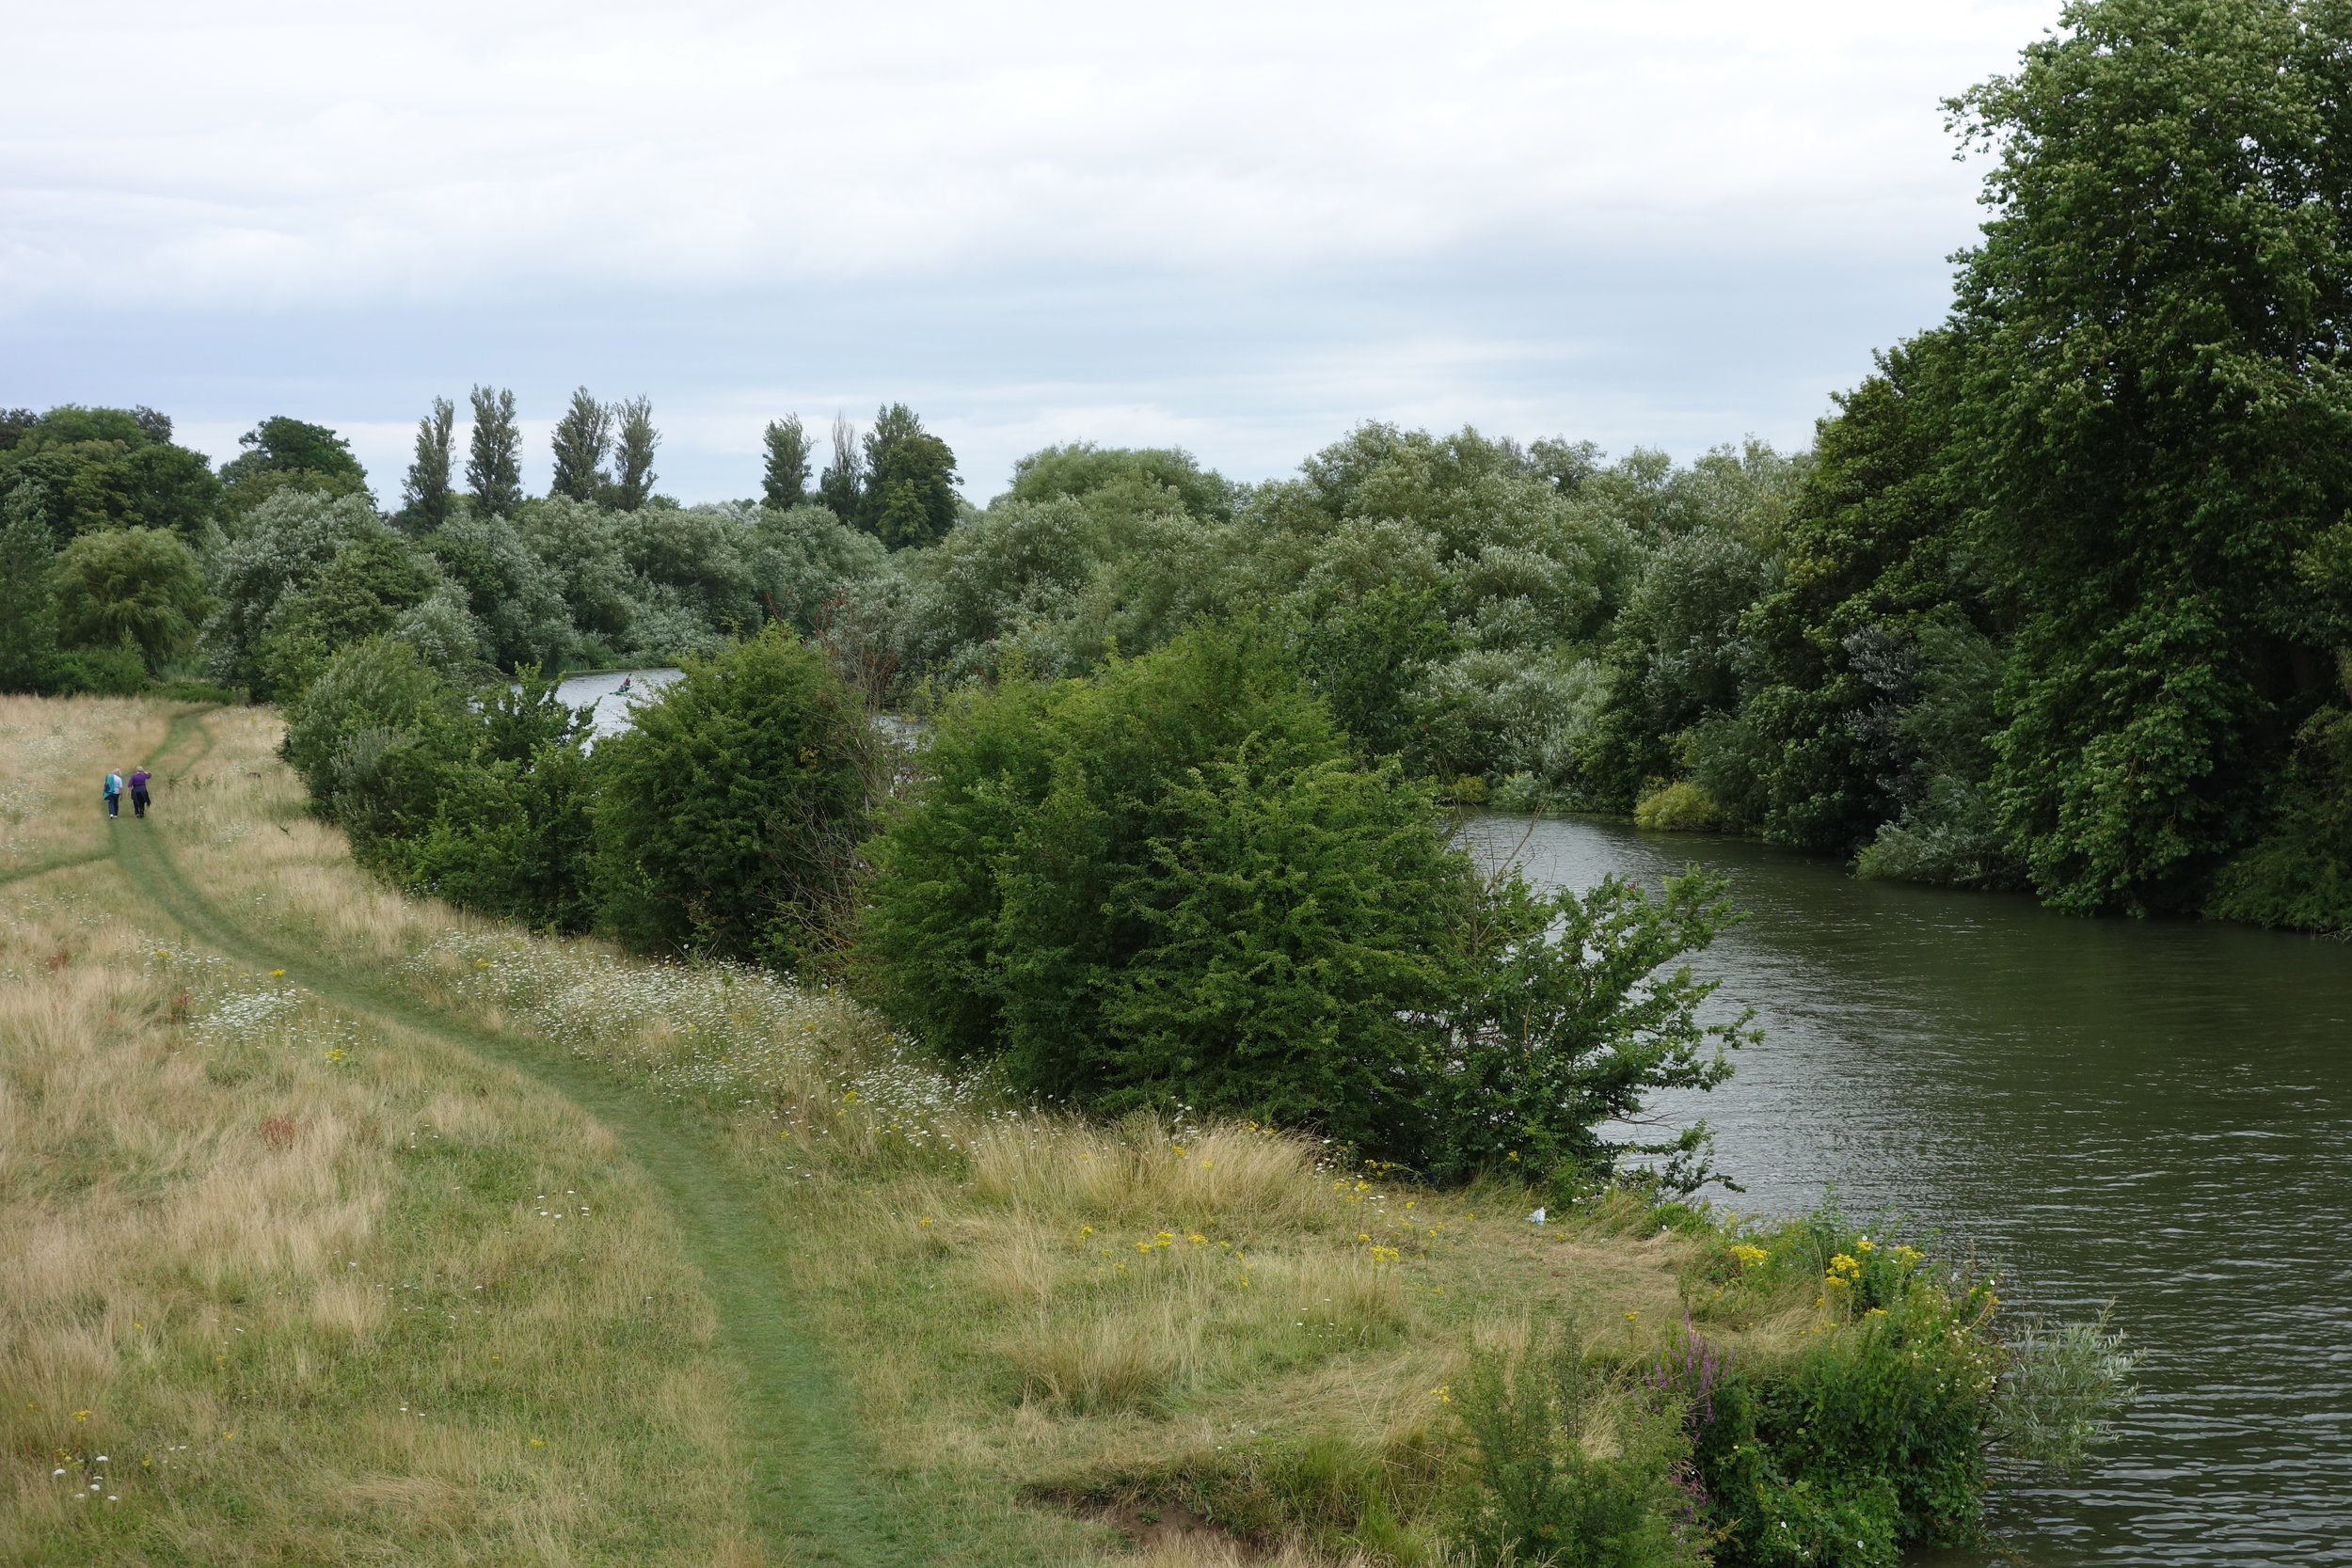 Much of the Thames Path skirts agricultural land hard on the river shore.